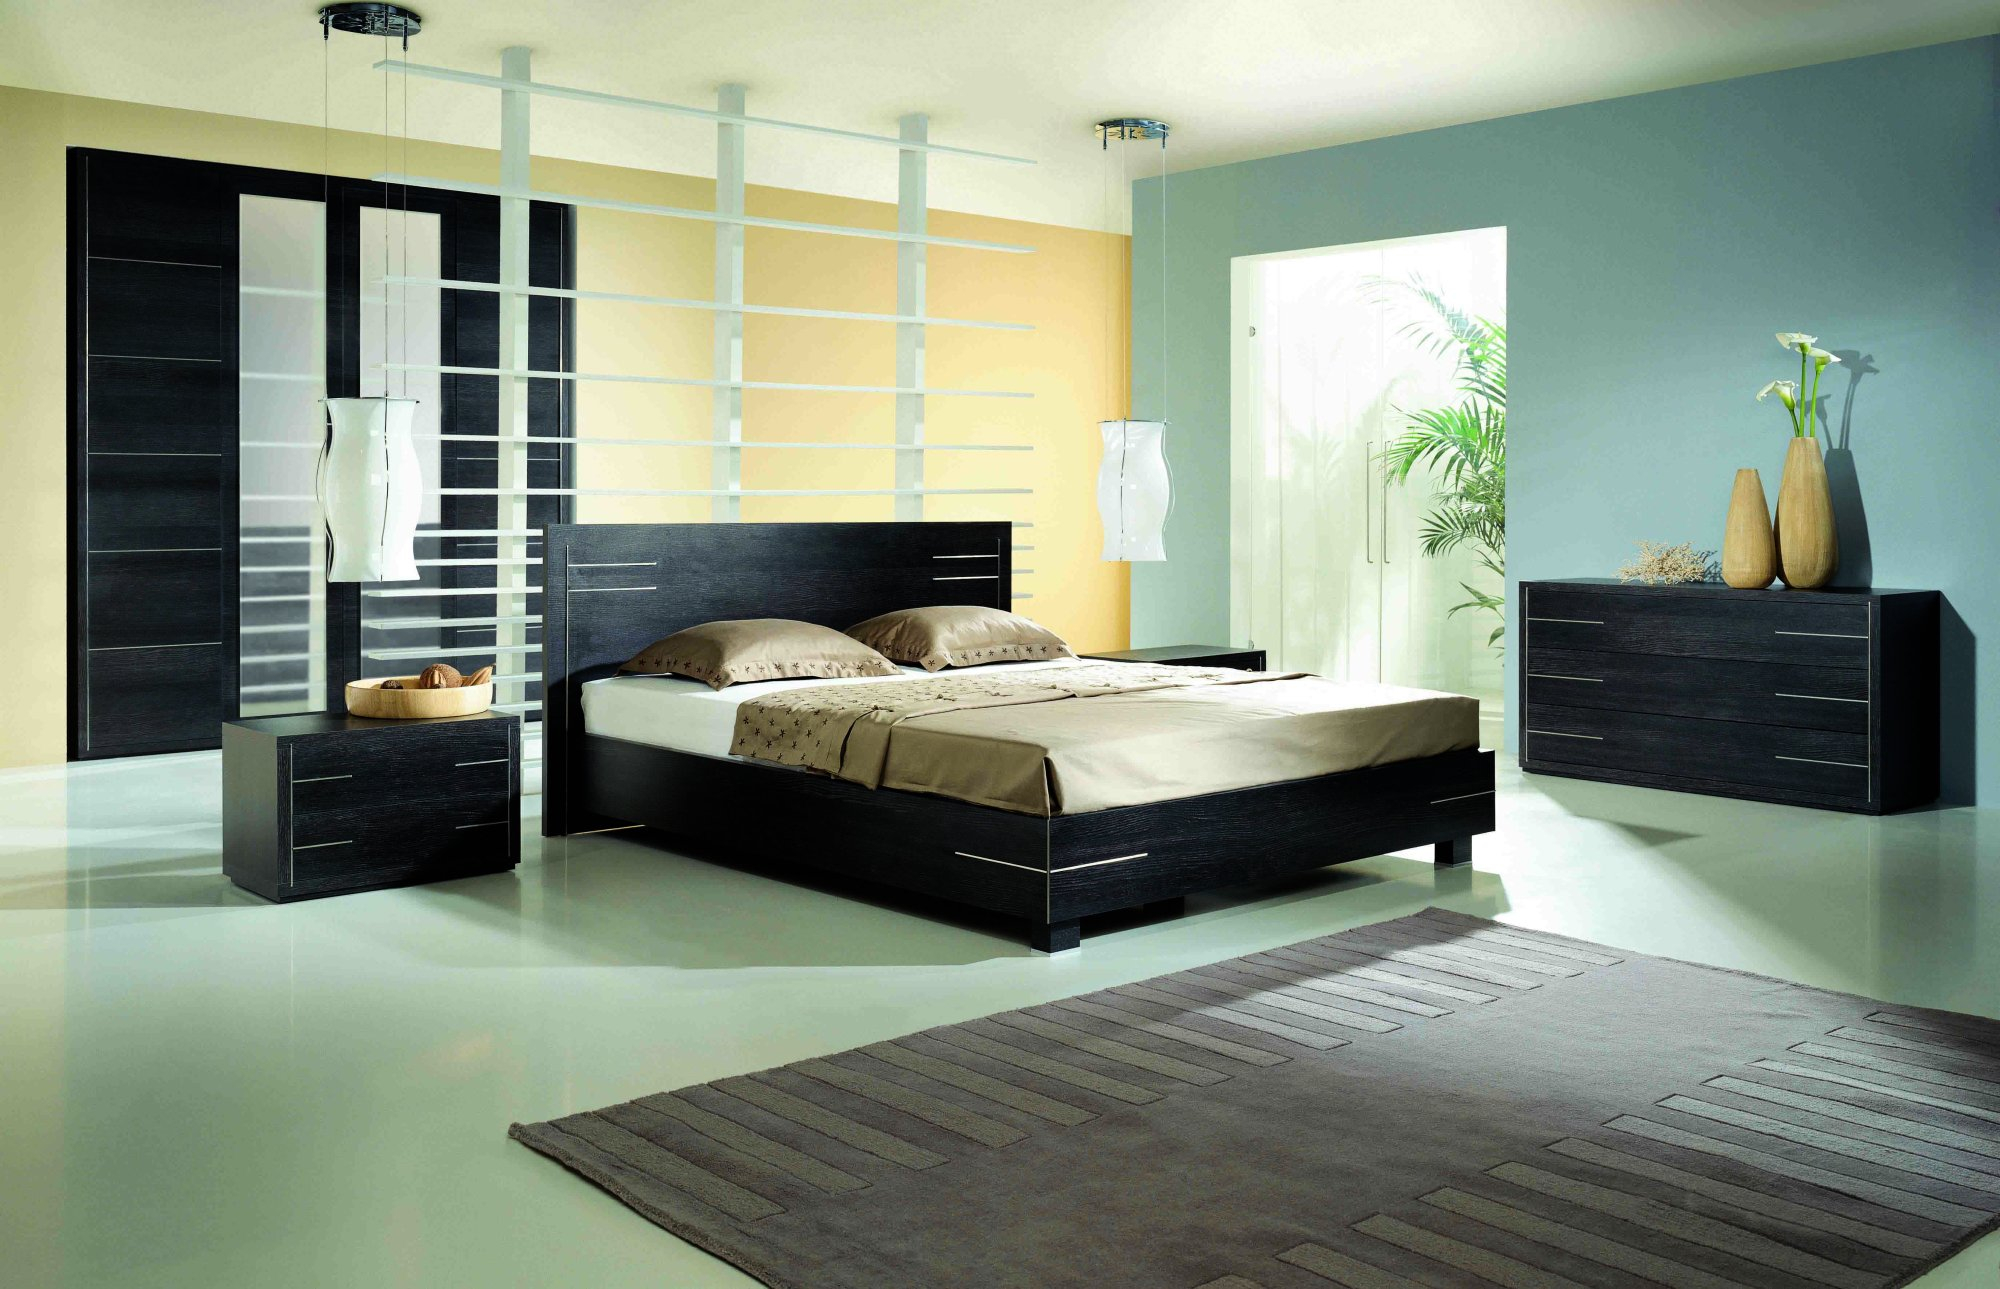 Modern Interior Colors Bedroom Ideas Wall Color Bedroom Color Ideas with regard to Modern Colors For Bedrooms